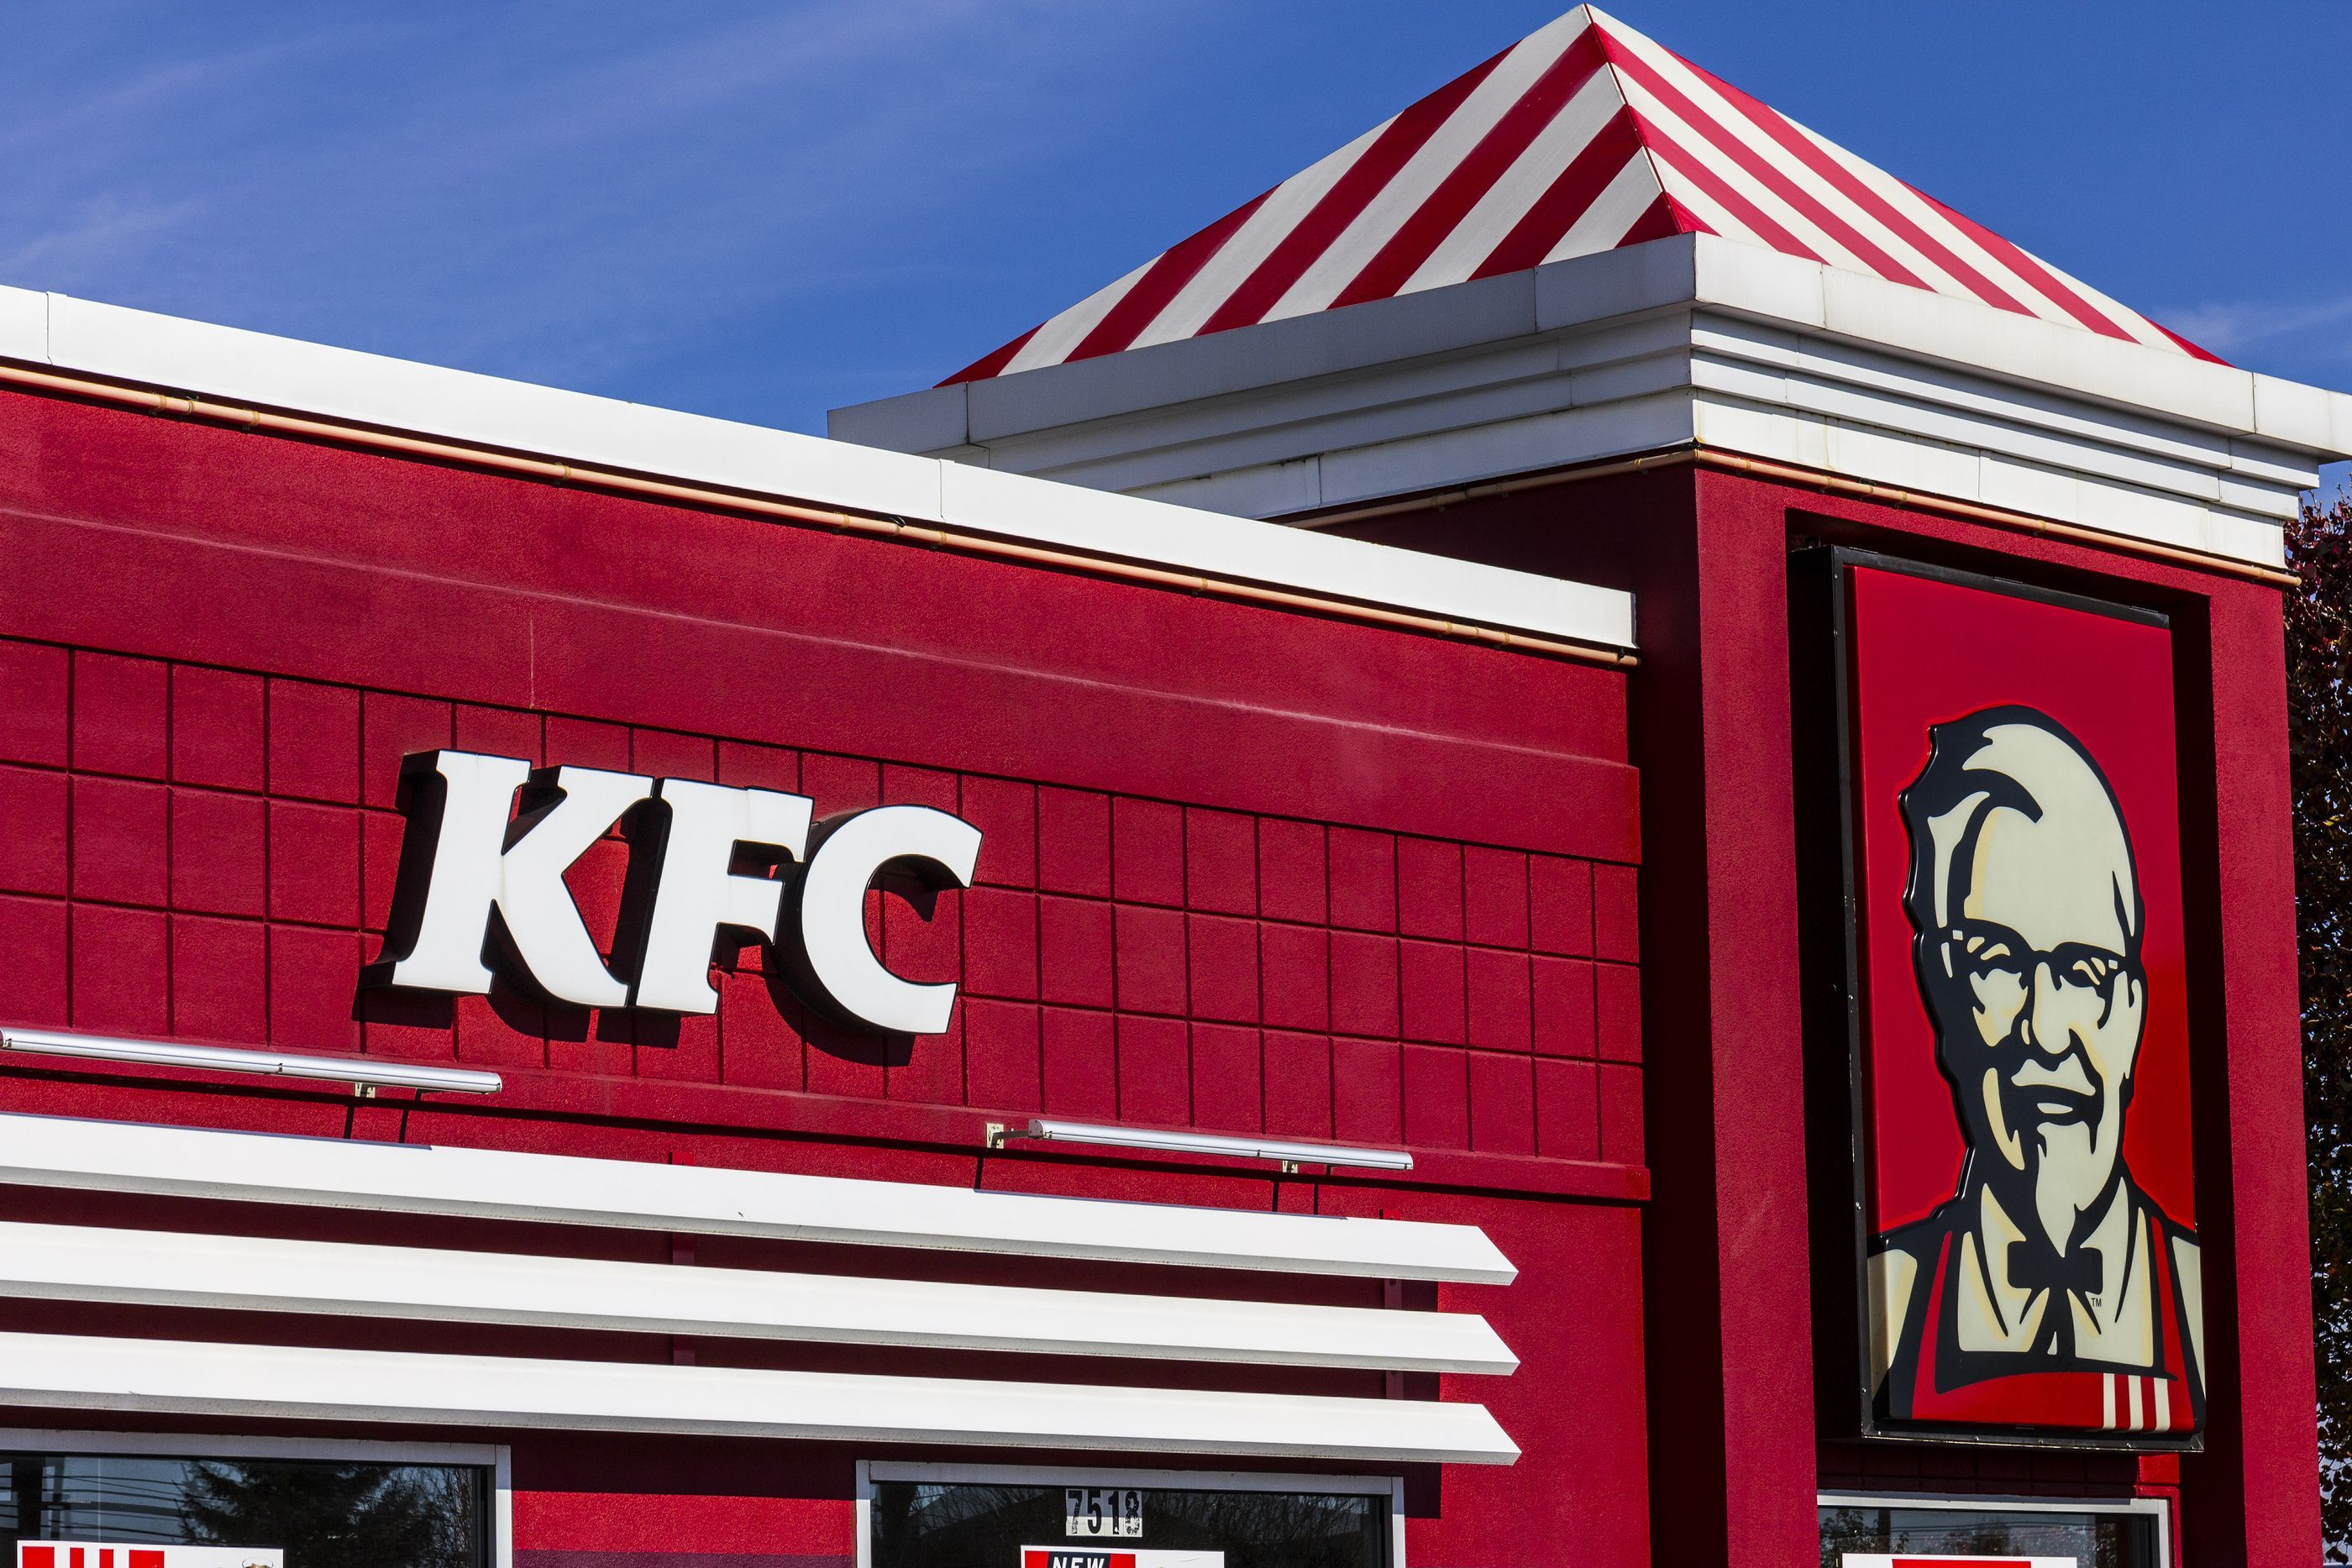 KFC stores deliver $9m sales boost for Restaurant Brands | Inside Franchise Business